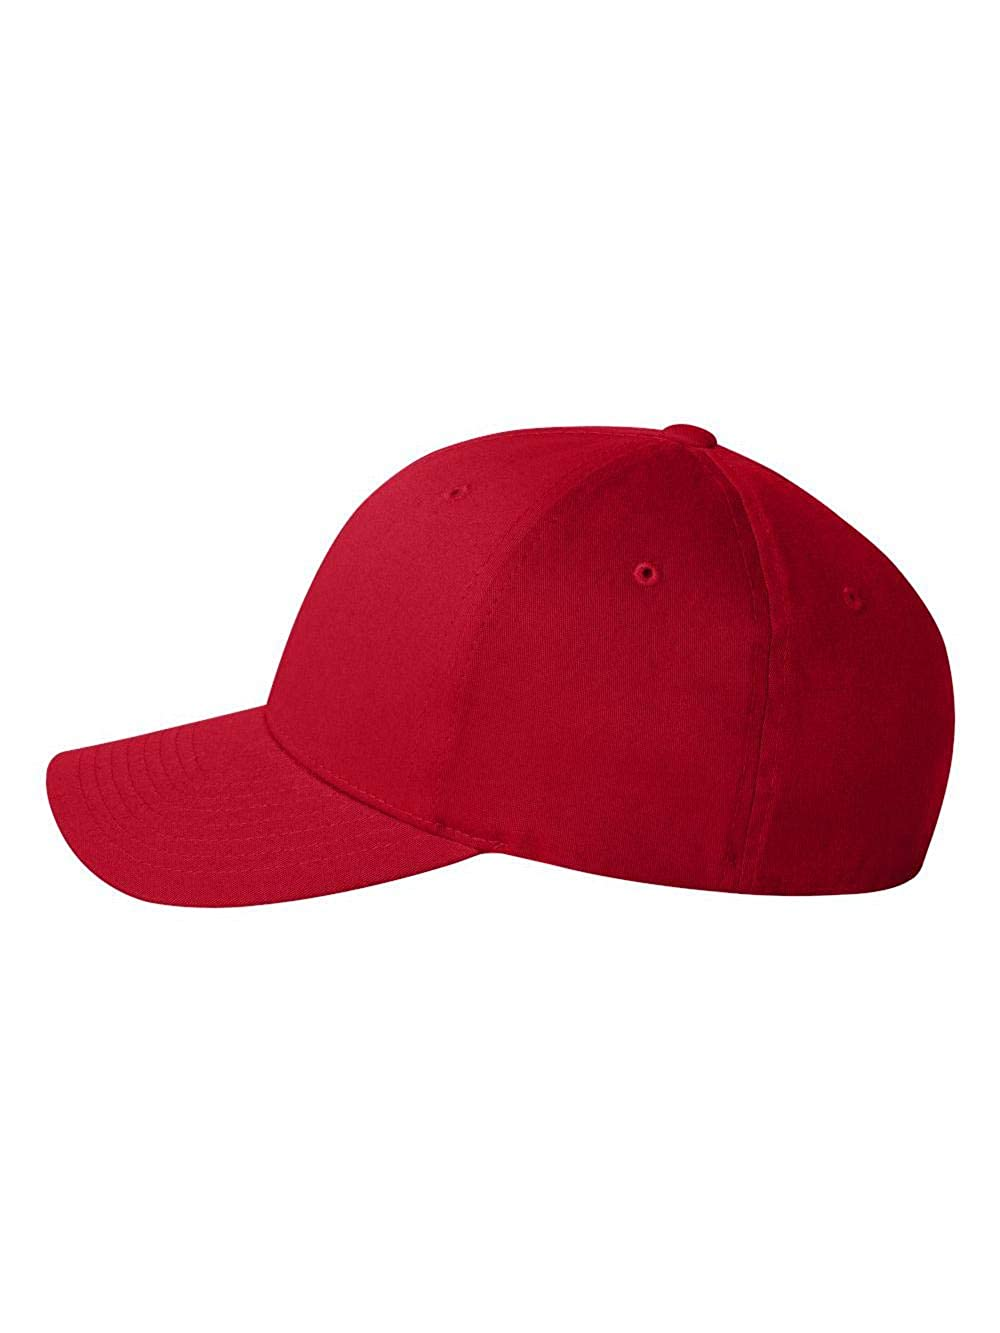 00ea49b2ae6d2 Premium Original Blank Flexfit Cotton Twill Fitted Hat  Amazon.ca  Clothing    Accessories